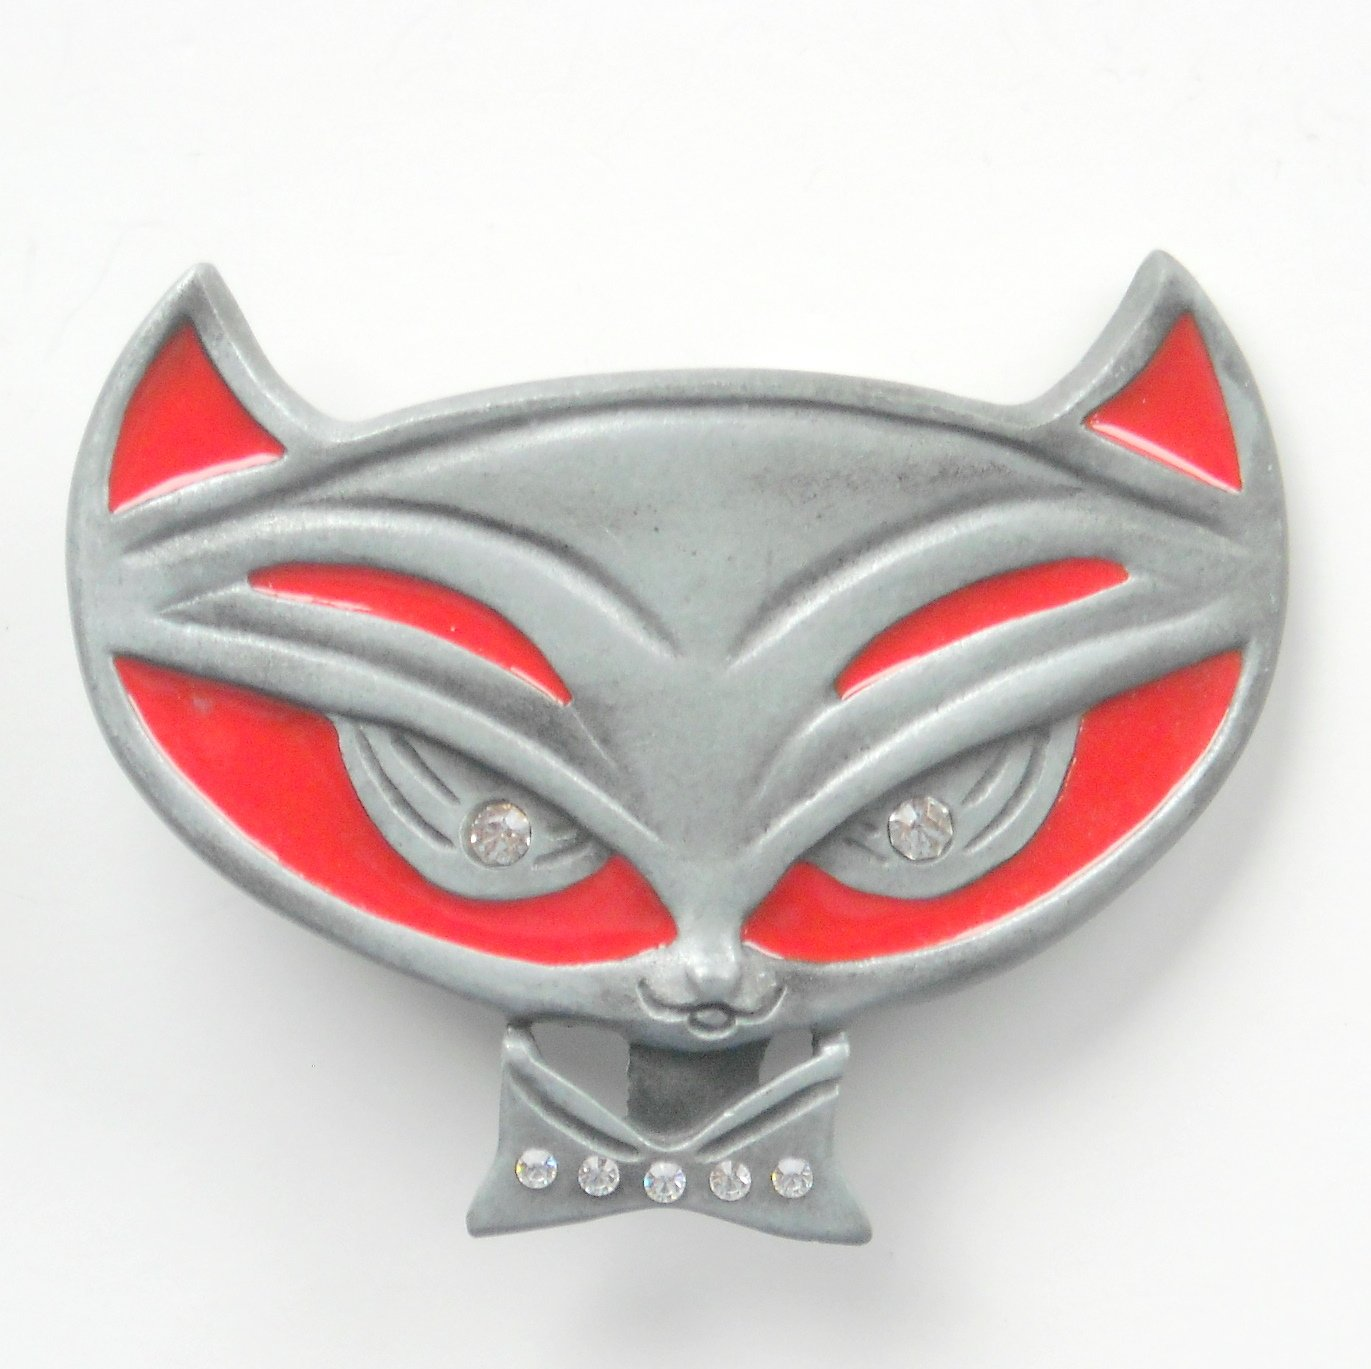 Pussycat Kitty Rhinestone Heavy Metal Red Enamel Belt Buckle